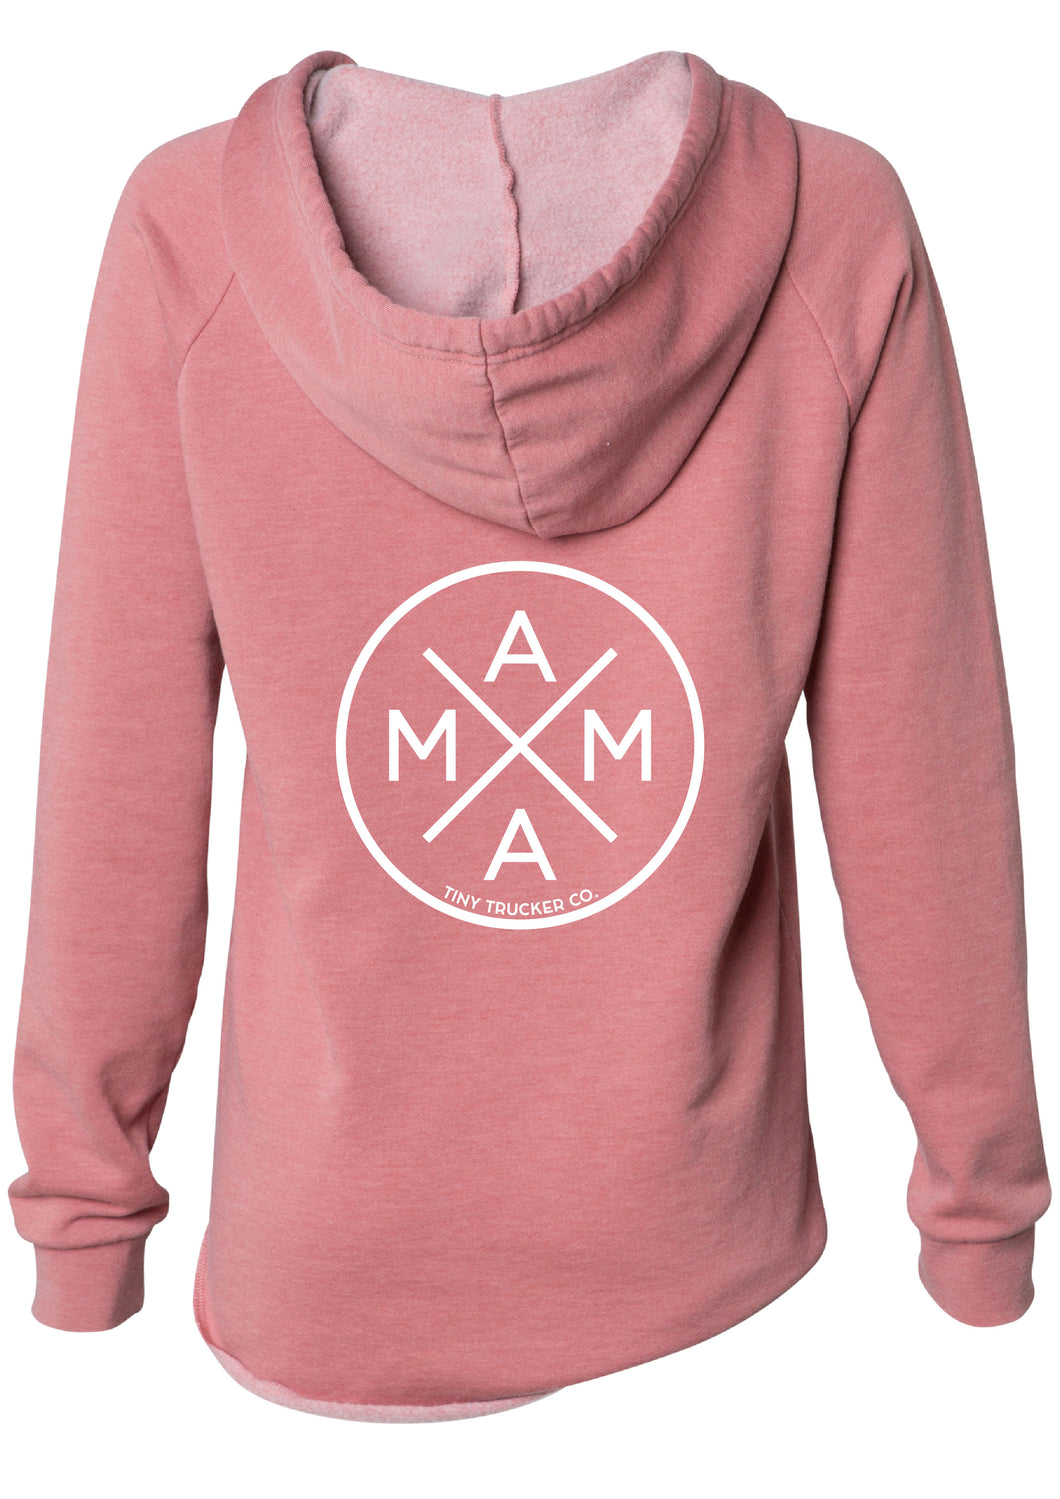 MAMA X ™ V-NECK SWEATSHIRT - DUSTY ROSE